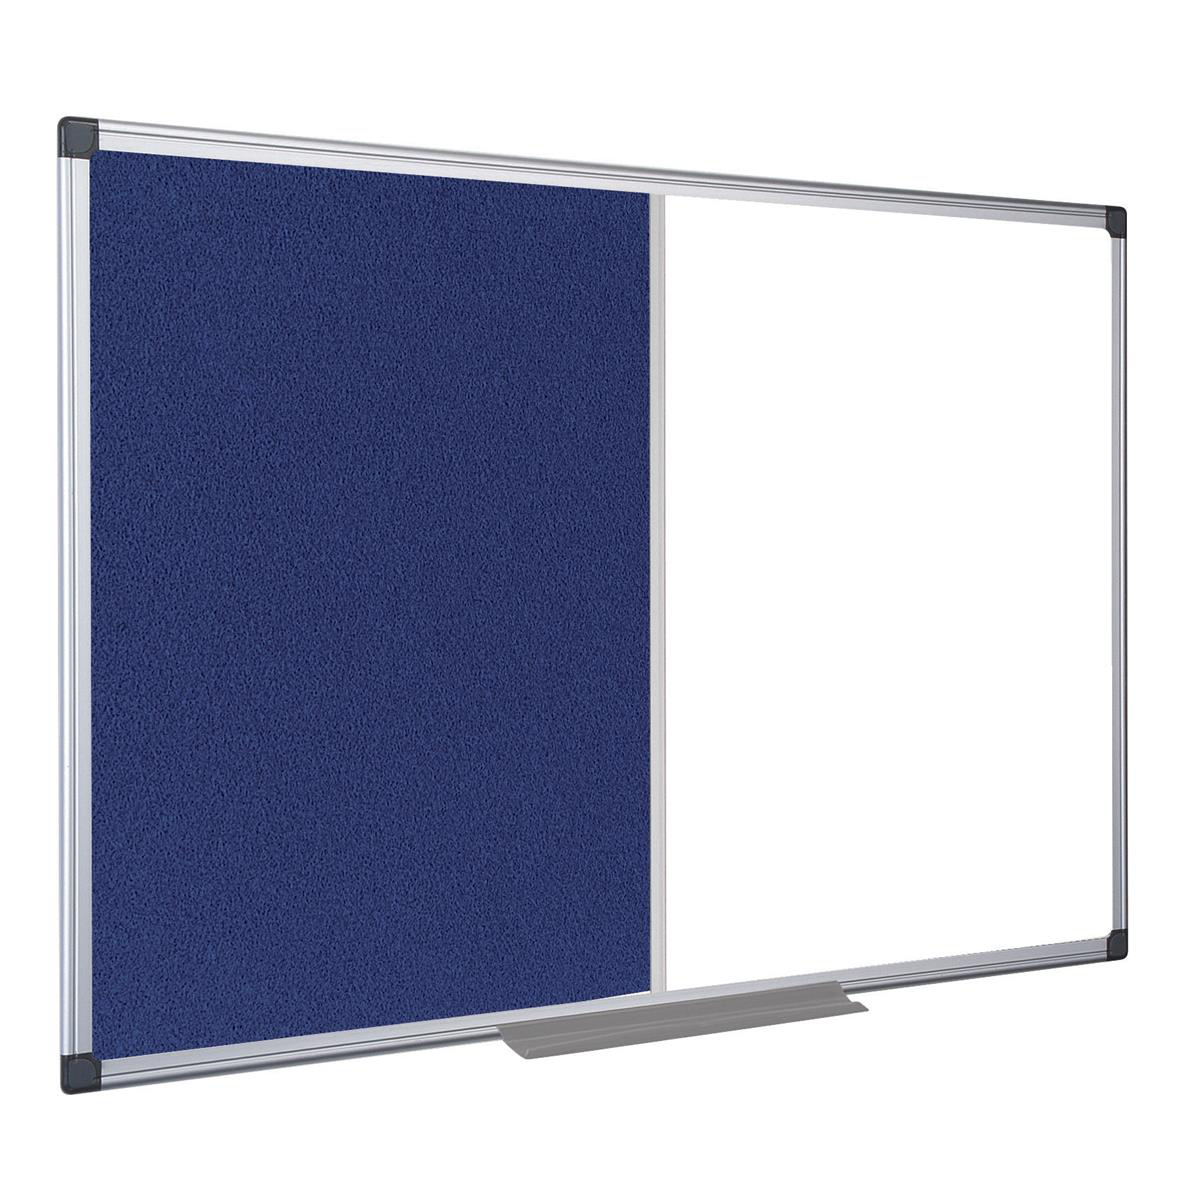 Foamboard 5 Star Office Combination Notice Board Felt and Drywipe W900xH600mm